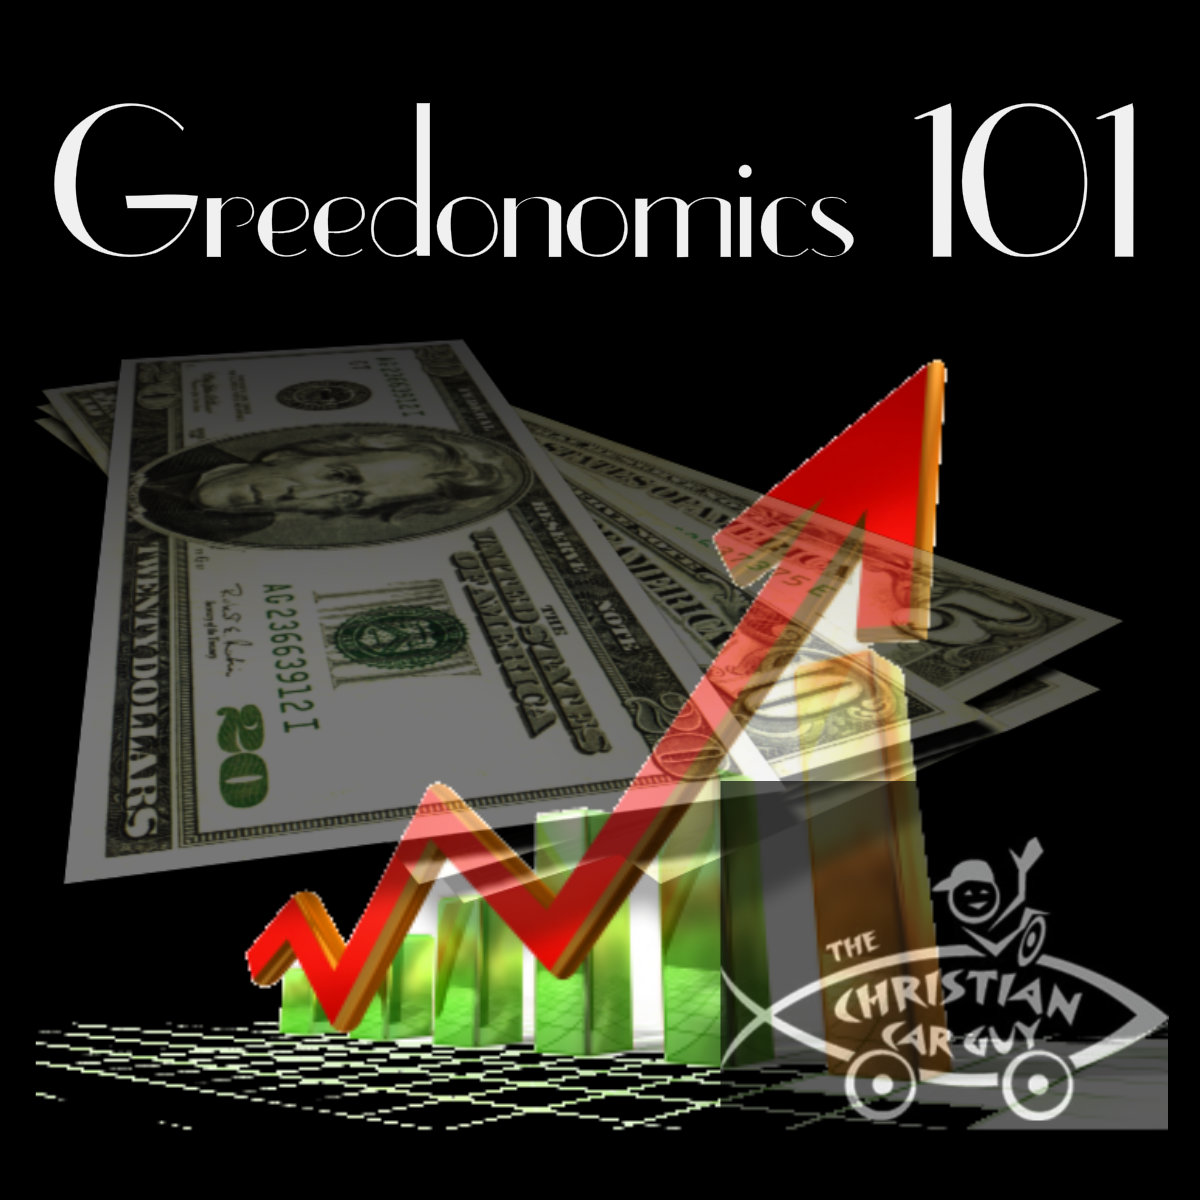 Greedonomics 101